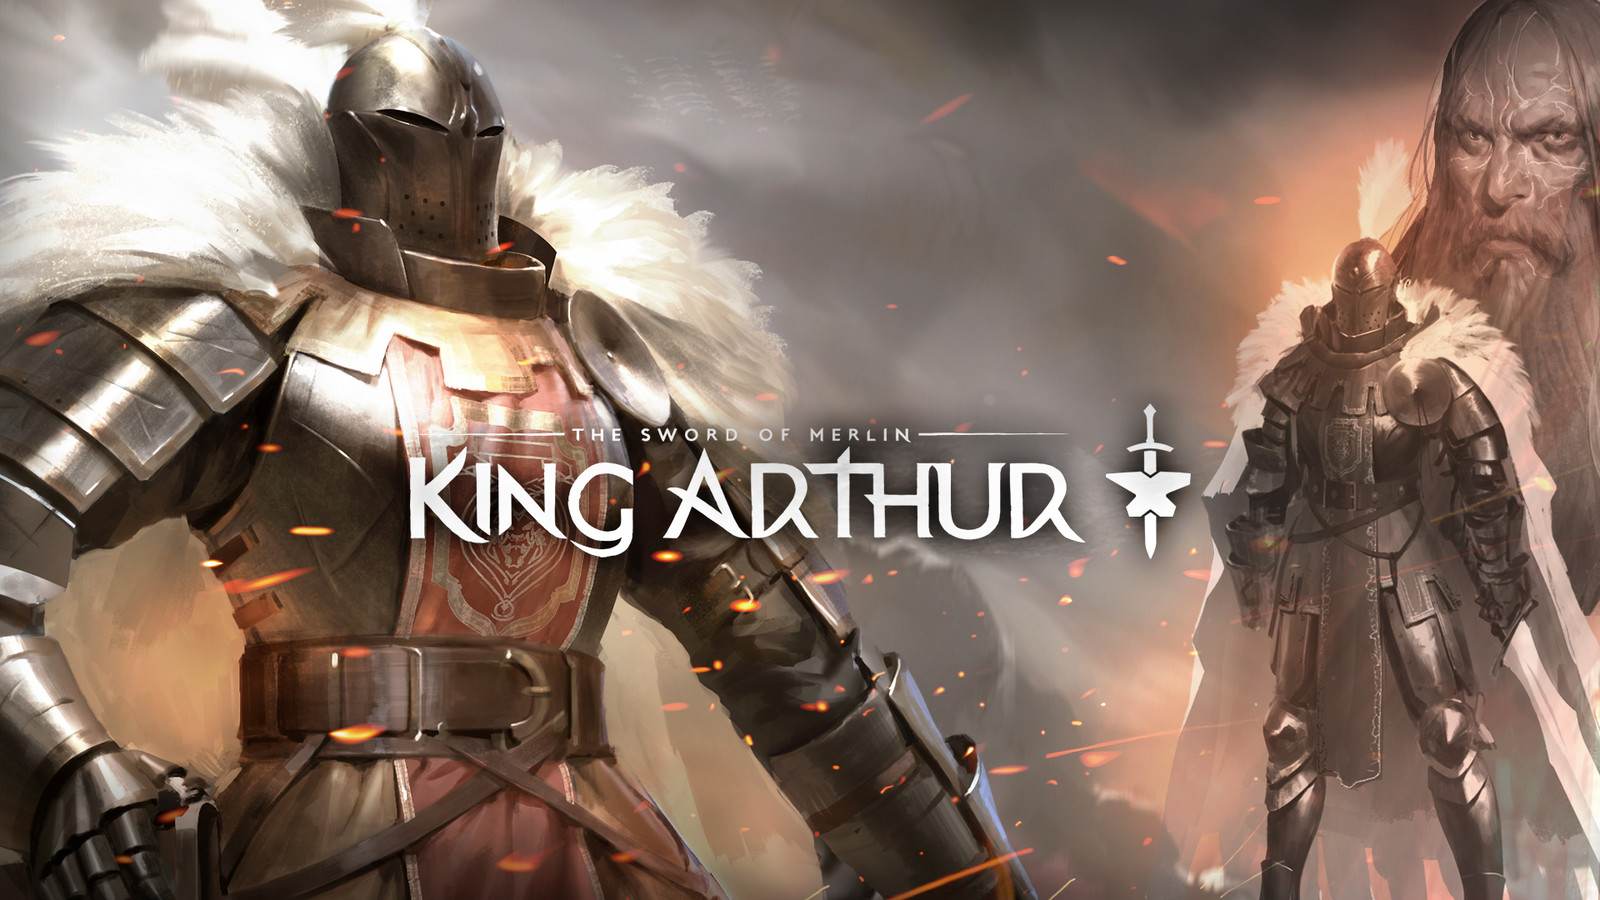 King Arthur / Indie project